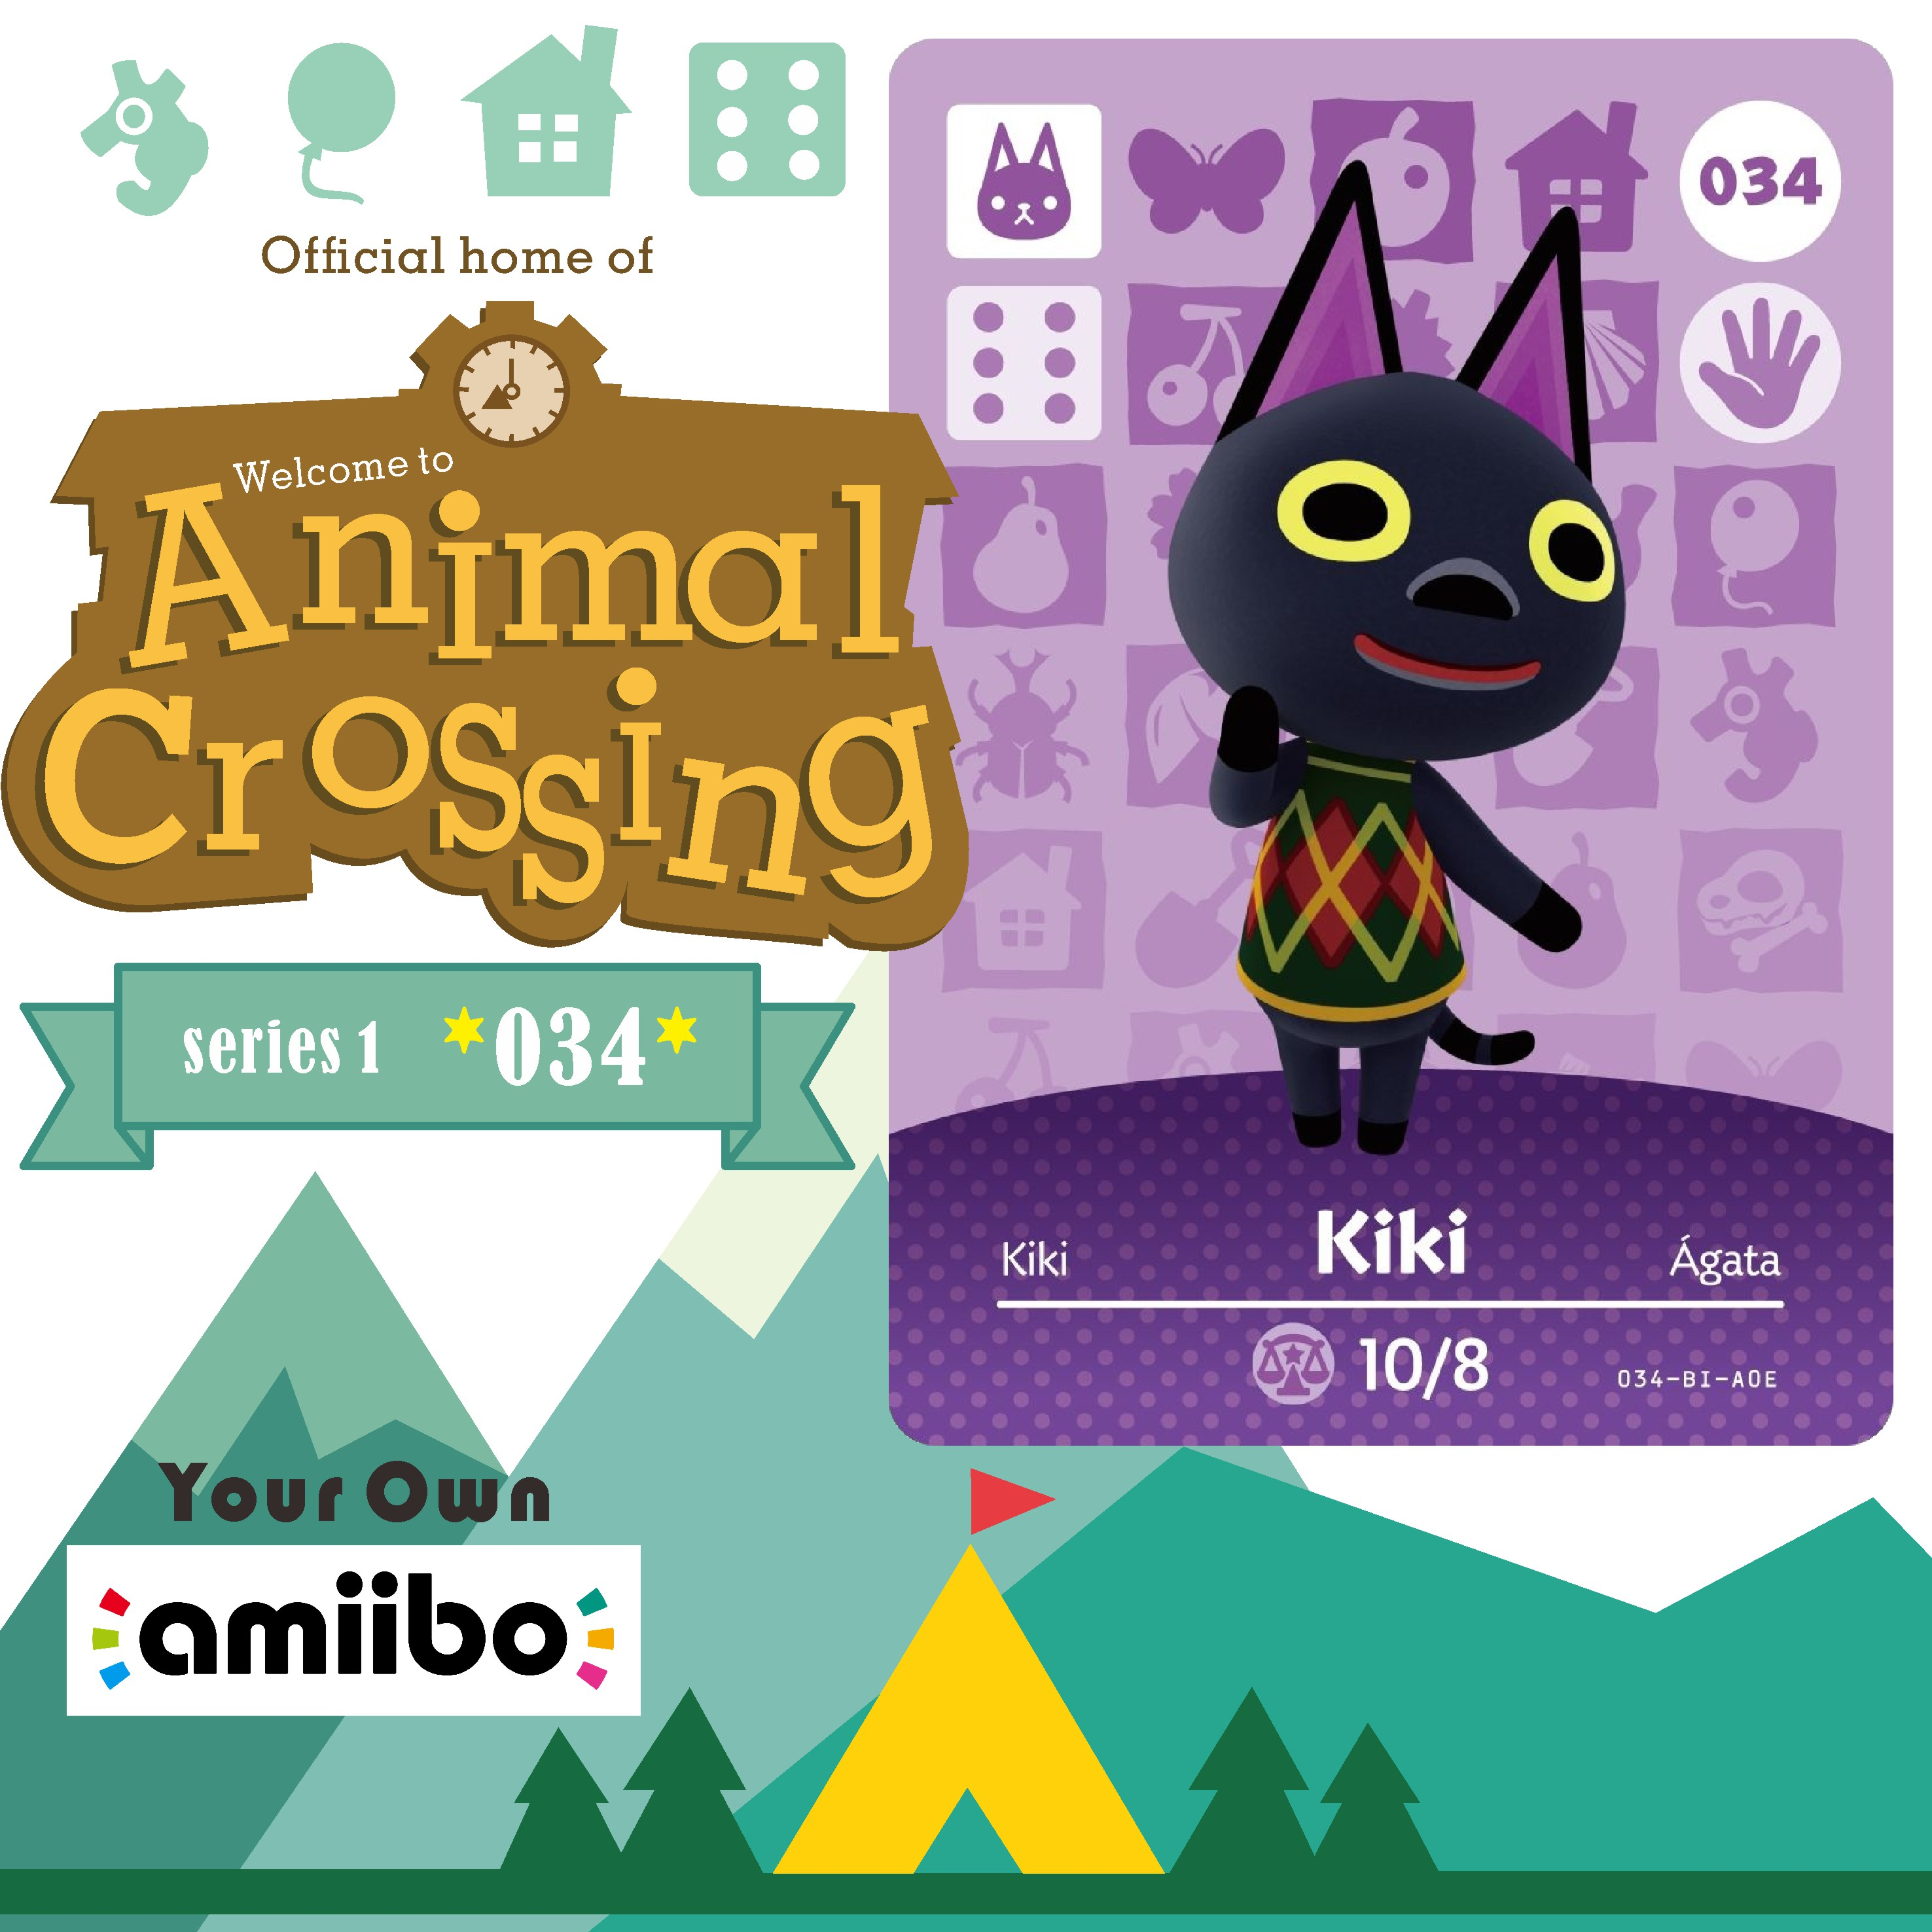 034 Kiki <font><b>Amiibo</b></font> <font><b>Card</b></font> Animal Crossing Series Animal Crossing New Horizons <font><b>Amiibo</b></font> <font><b>Card</b></font> Work for Ns <font><b>Switch</b></font> Games <font><b>Nfc</b></font> <font><b>Card</b></font> image